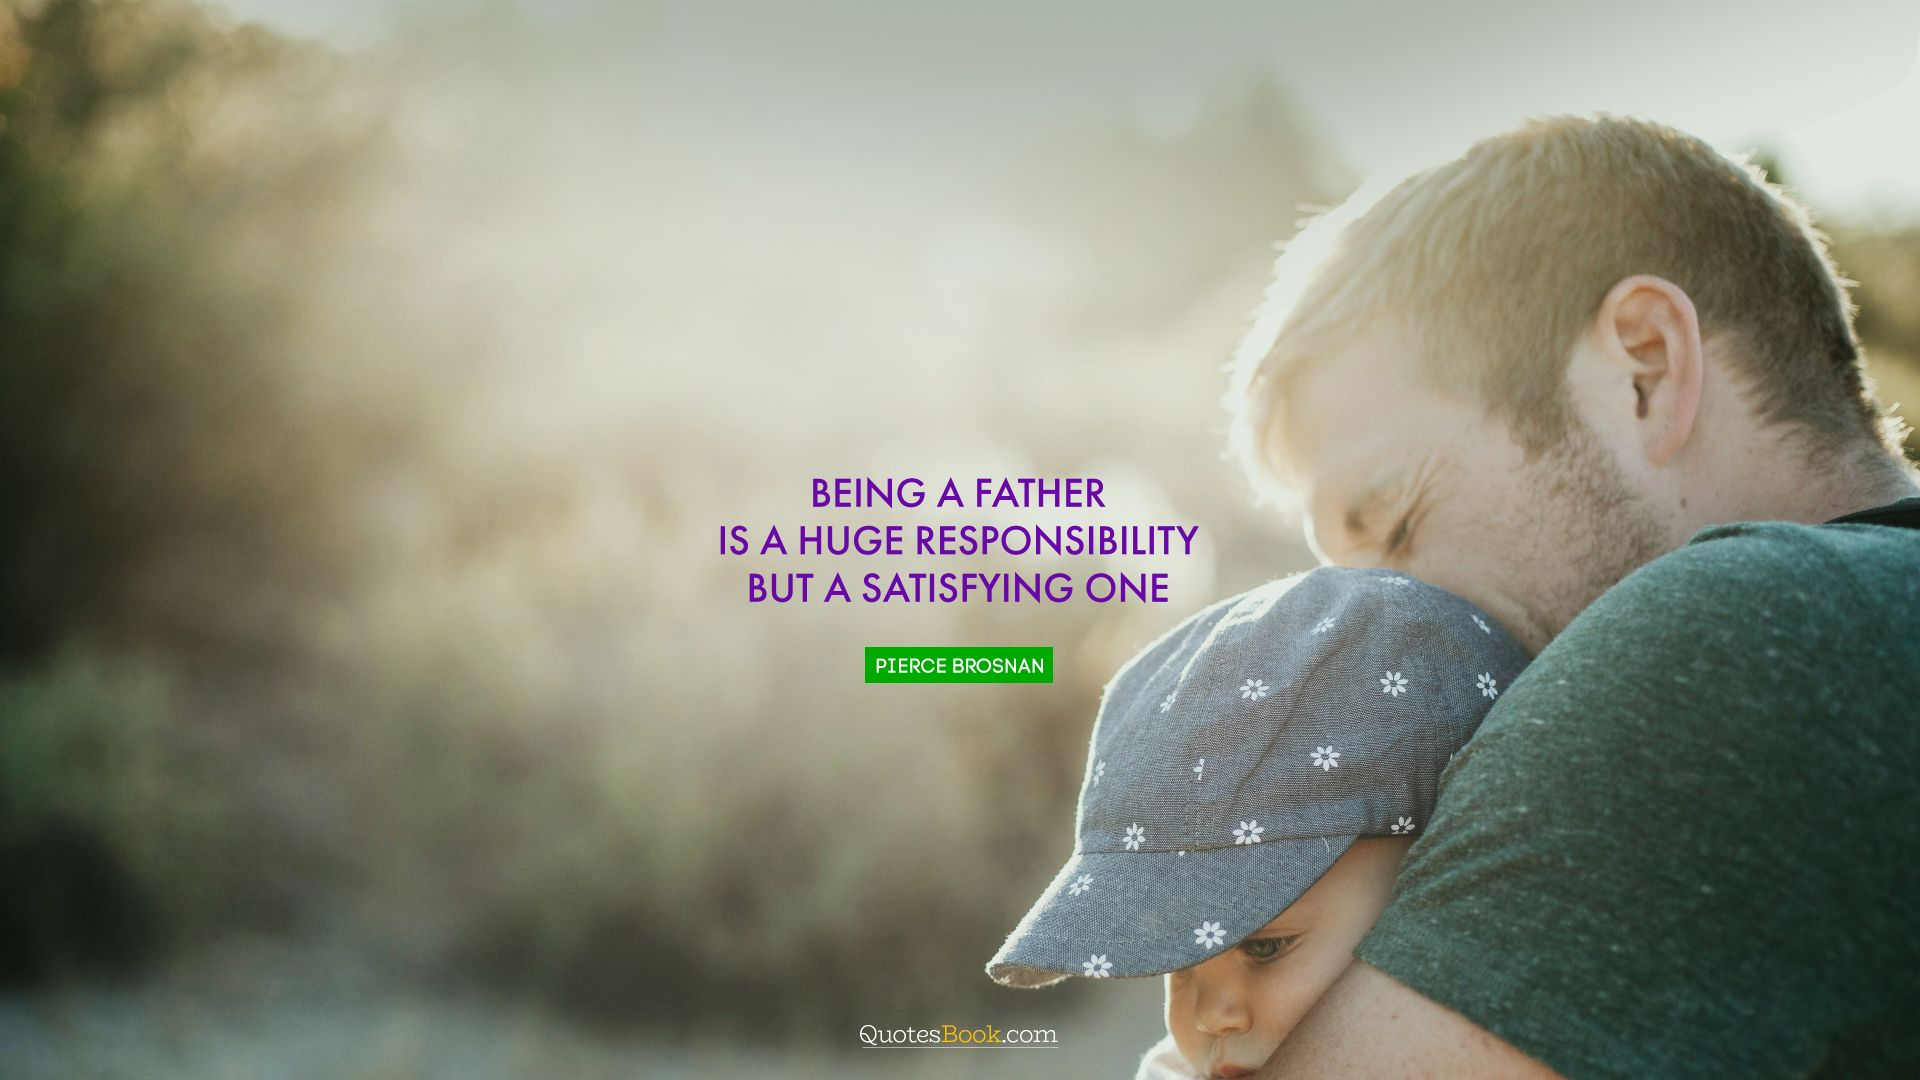 Being a father is a huge responsibility but a satisfying one. - Quote by Pierce Brosnan